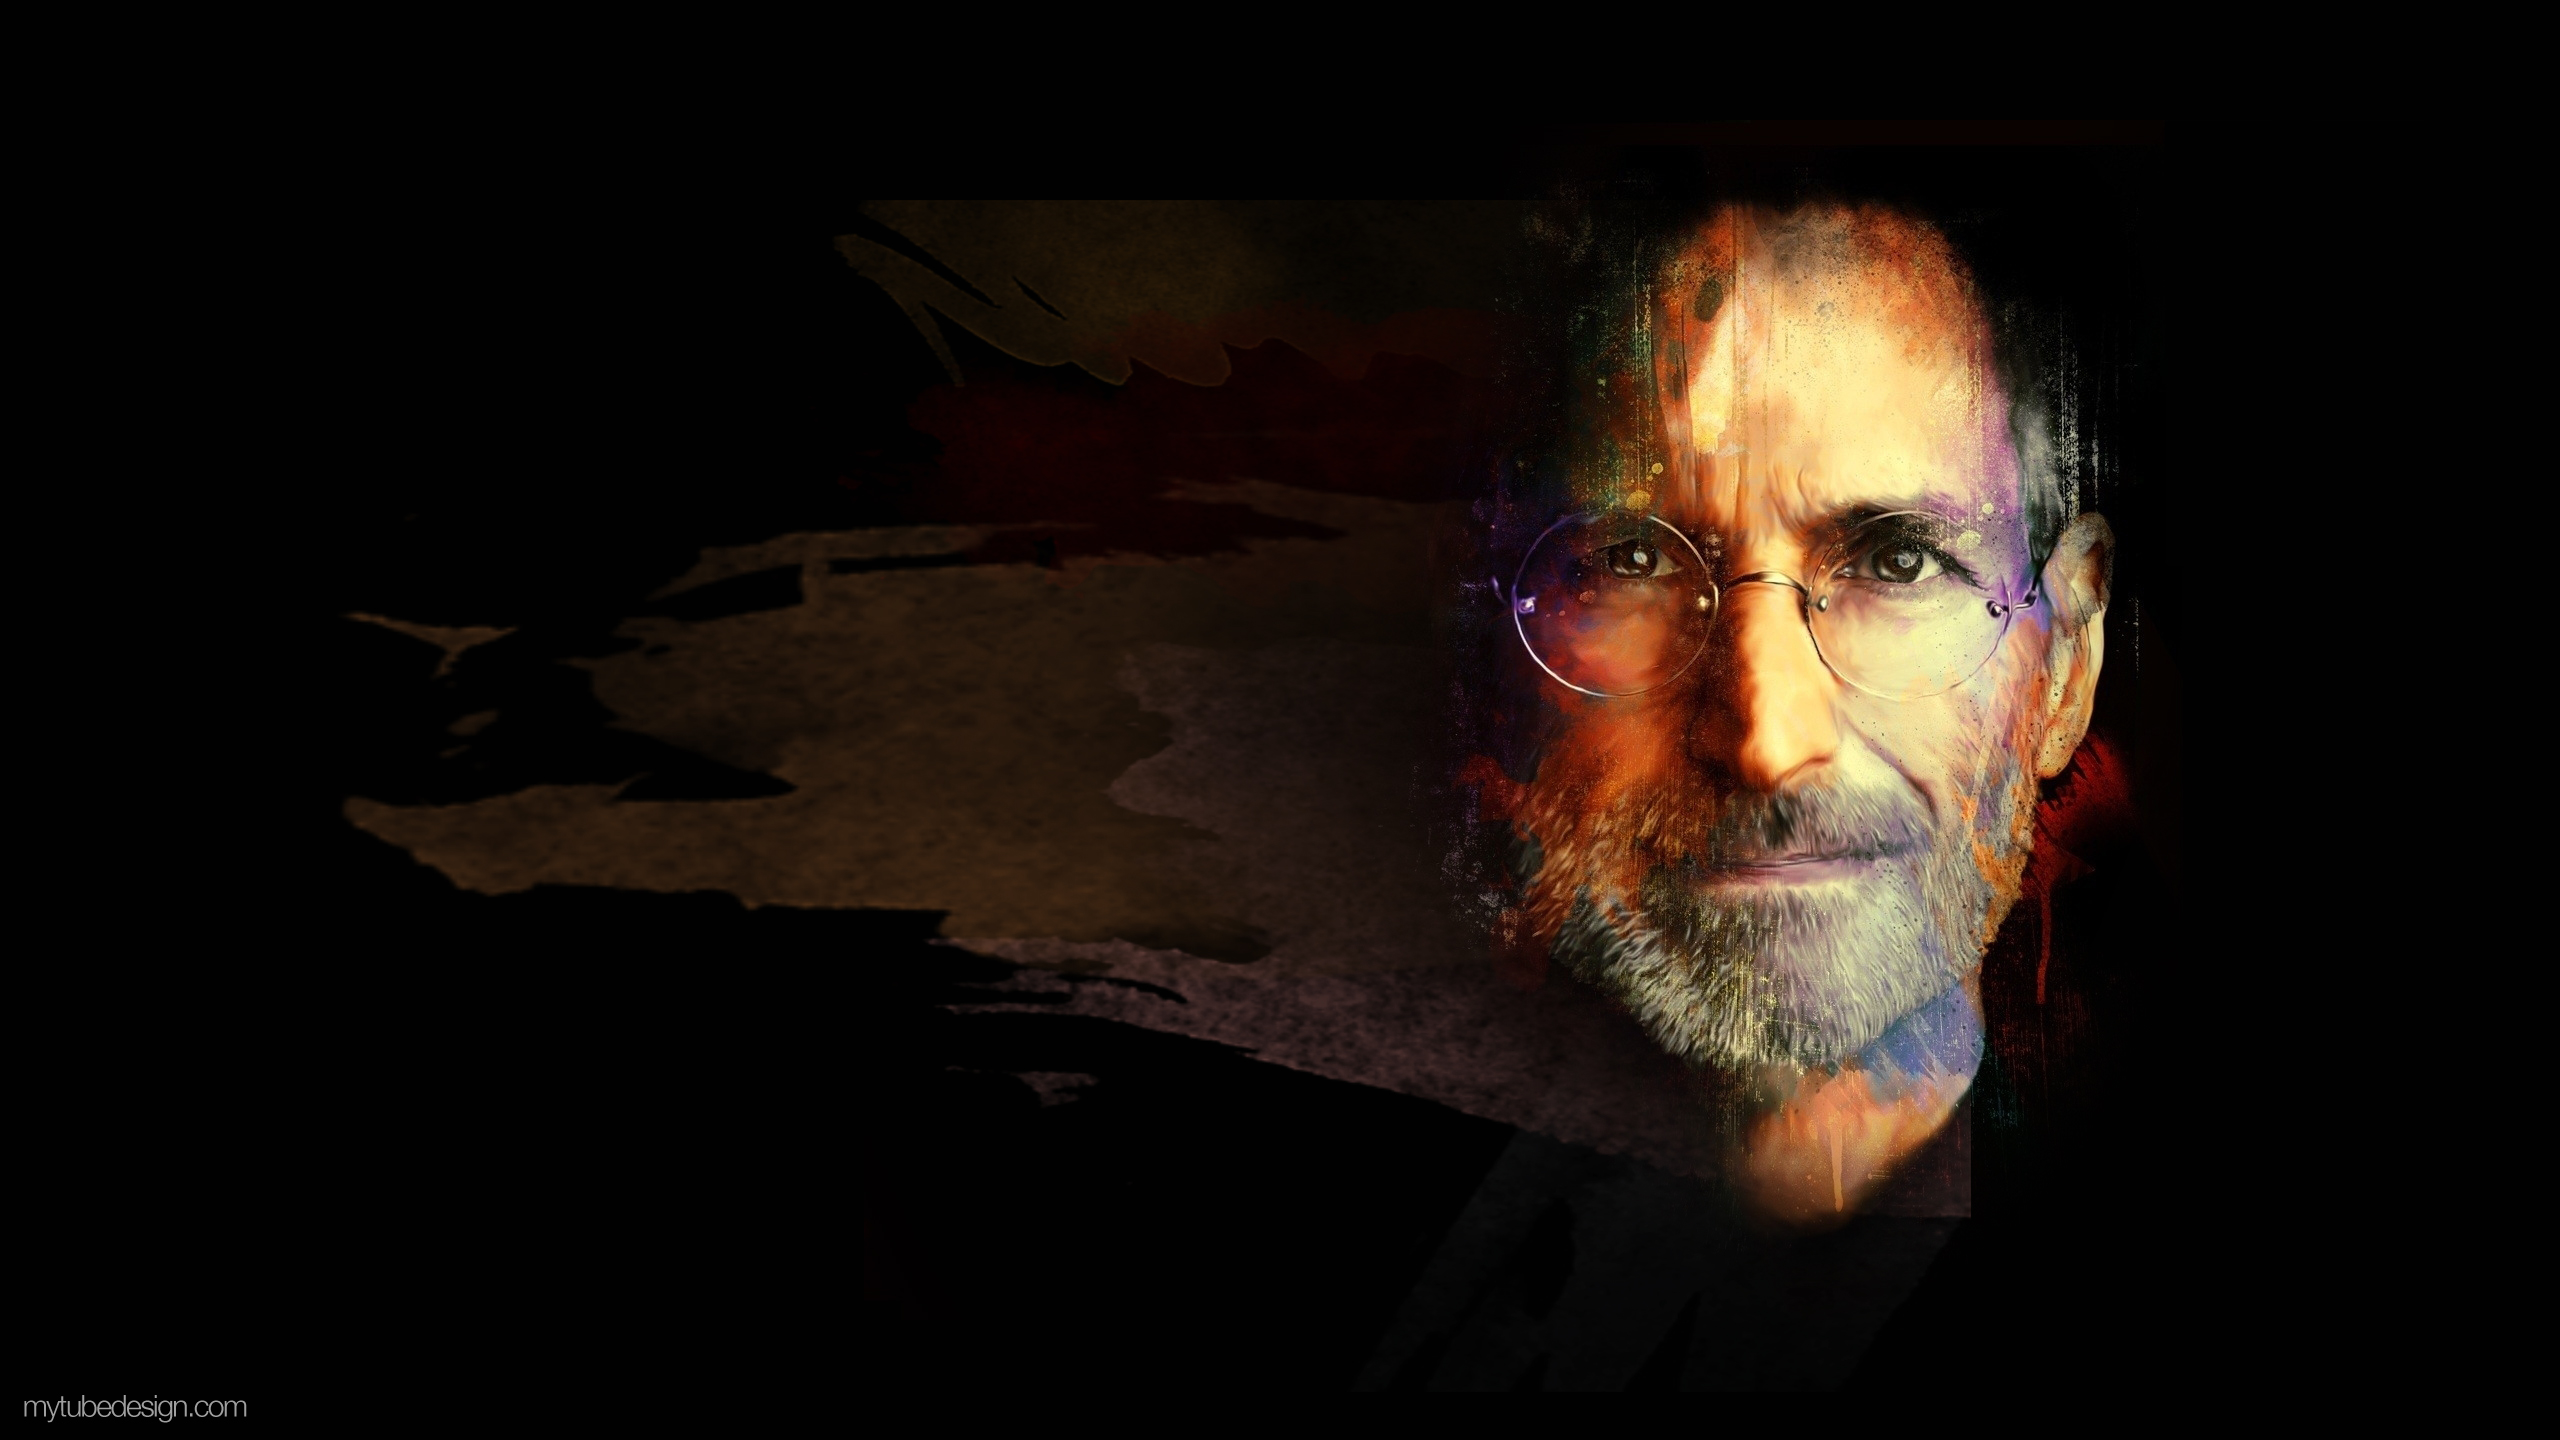 Steve Jobs Wallpaper Live Steve Jobs Photos 45 PC Ie 2560x1440